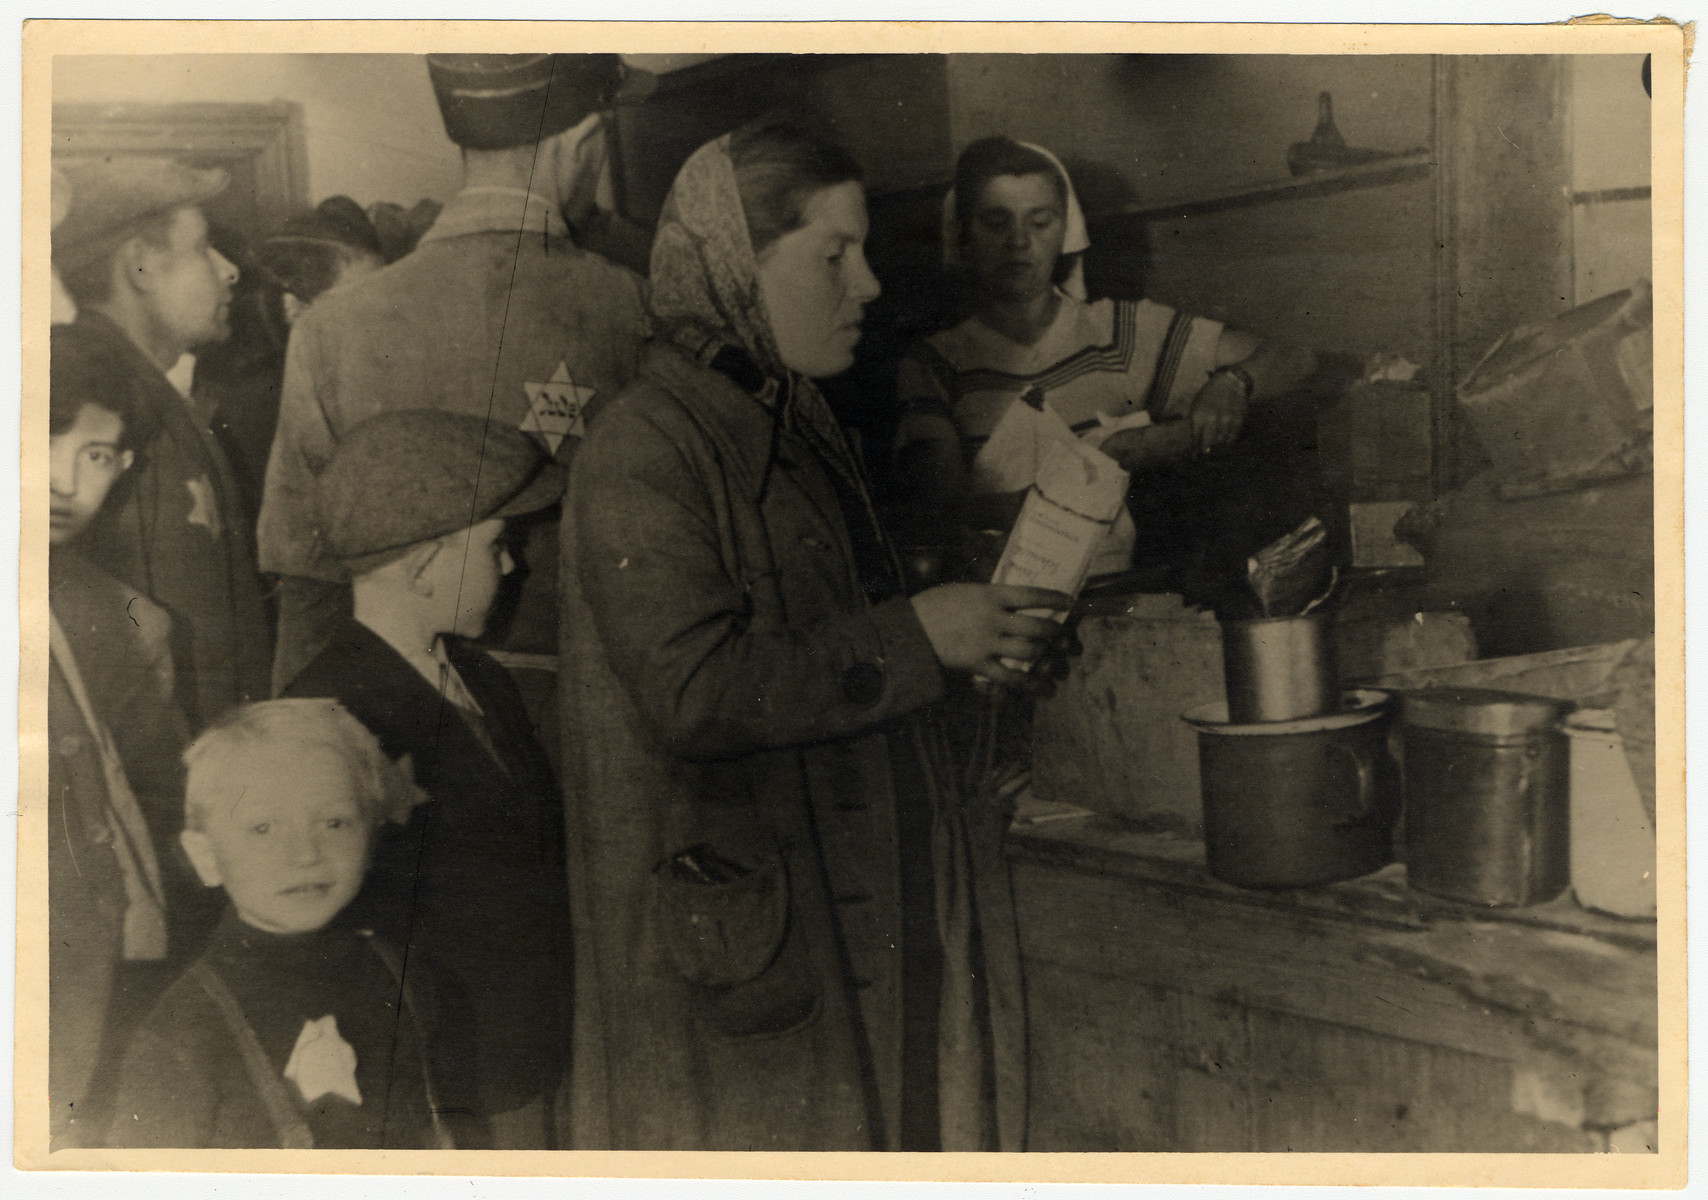 A woman and her child collect their rations at a food distribution center in the Lodz ghetto.   Photographer Mendel Grossman's sister and her son, Yankele, are in the foreground.